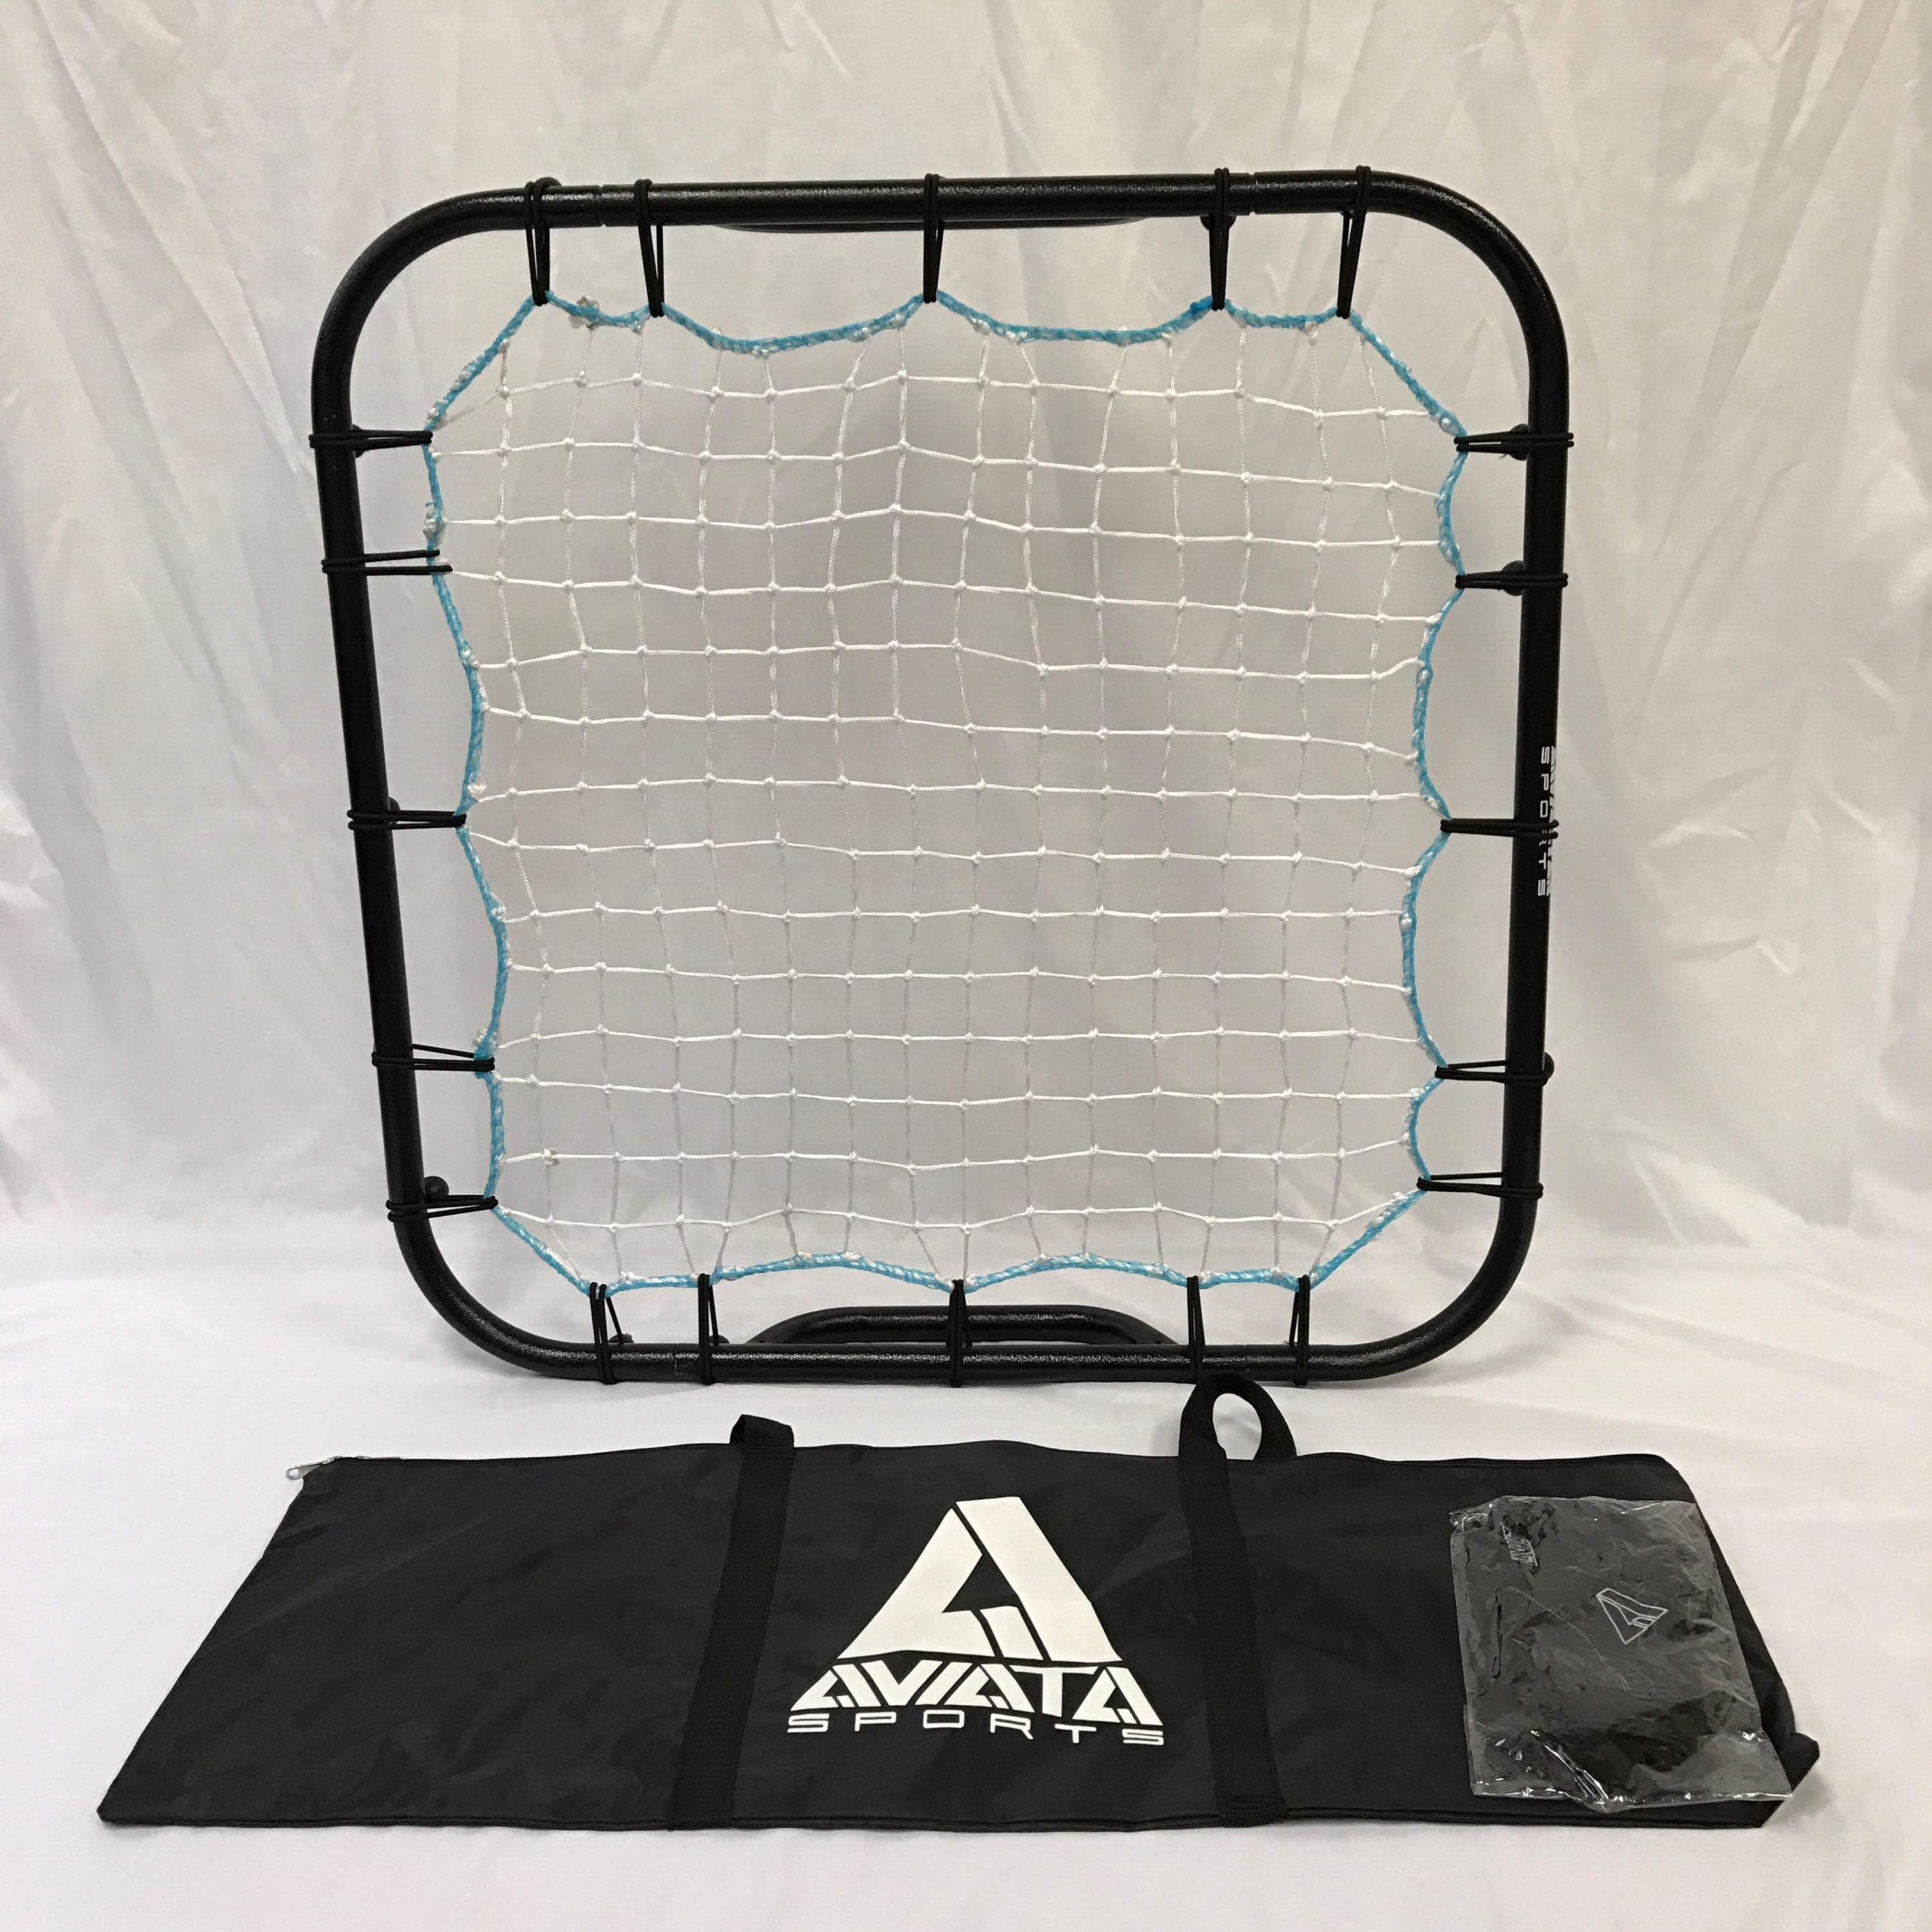 Hand Held Rebounder - Portable and Collapsible